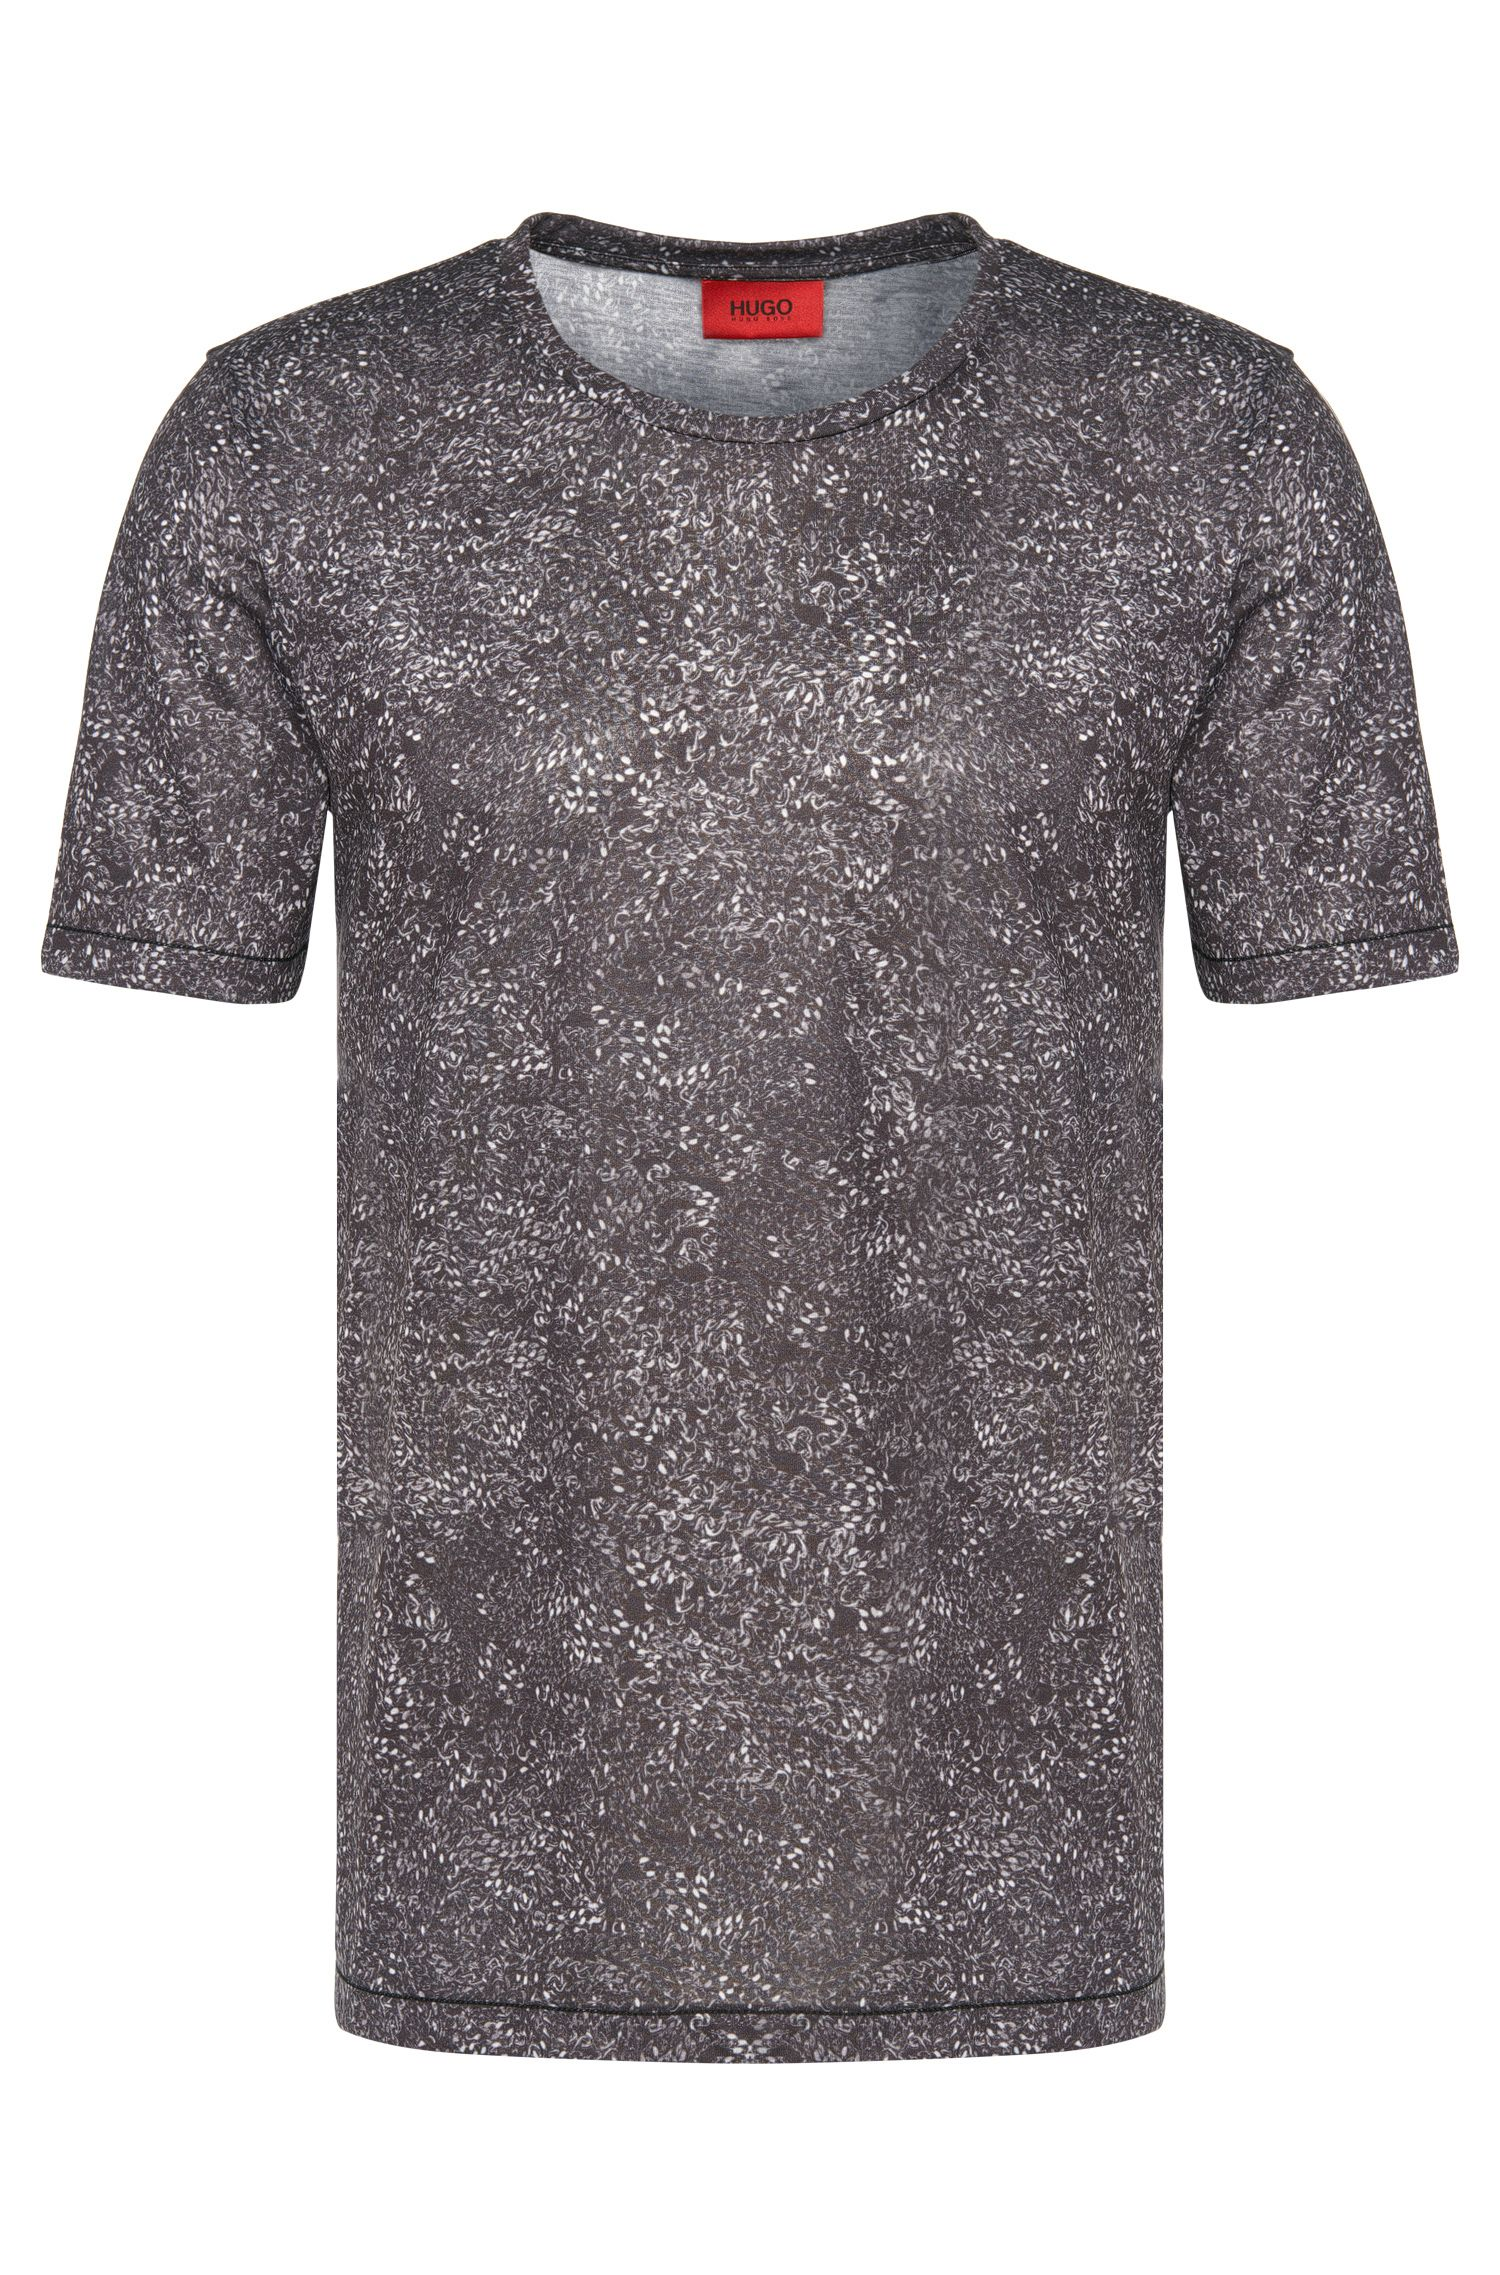 Loose-fit T-shirt met dessin: 'Dchain'